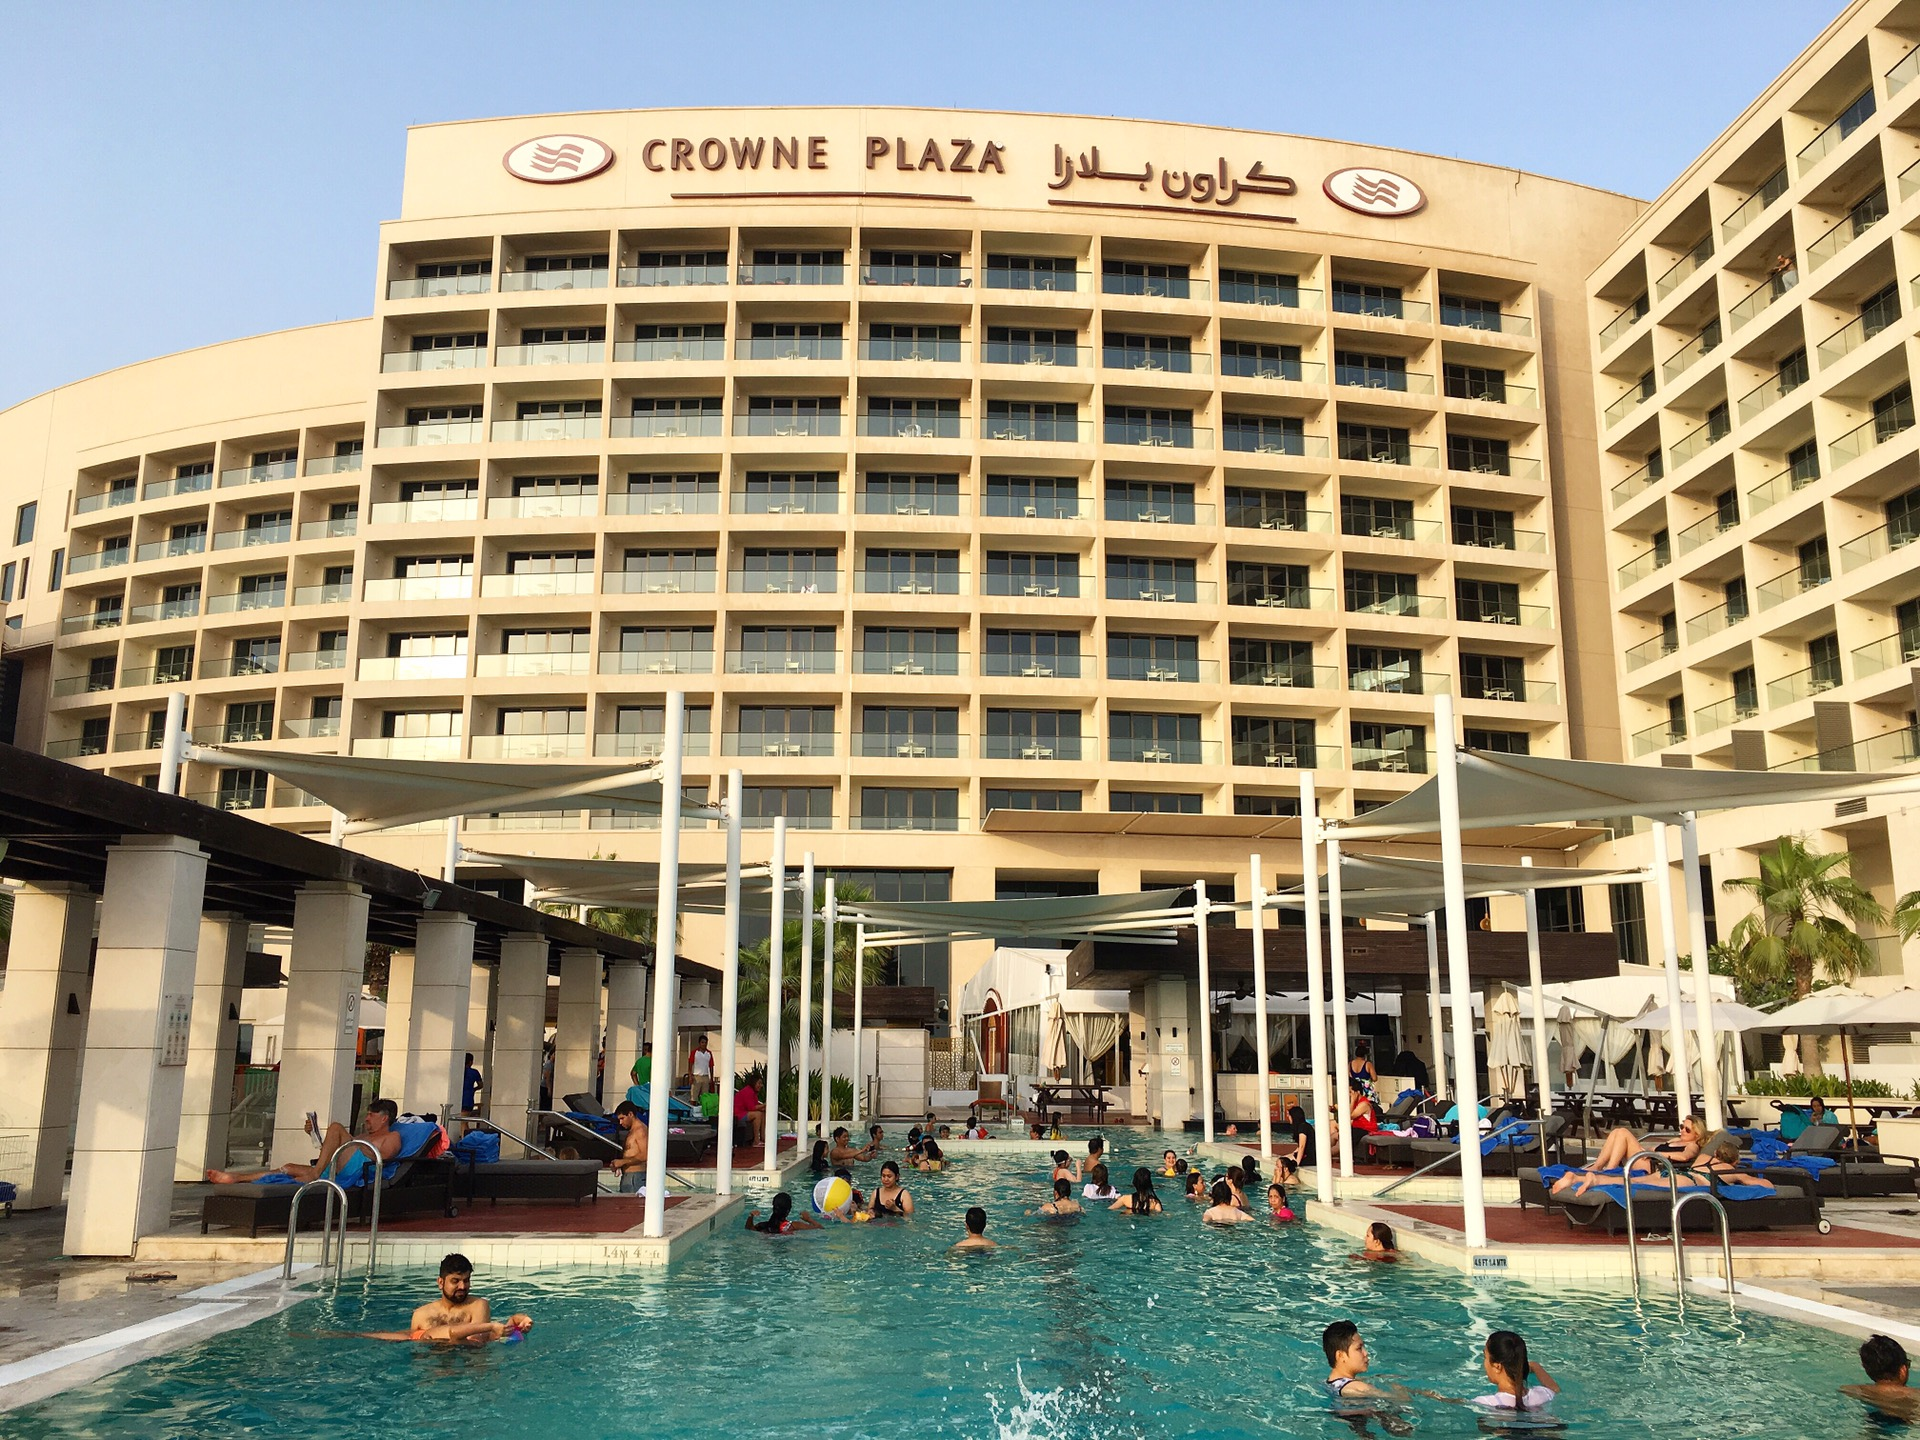 Crowne Plaza Yas Island Spa